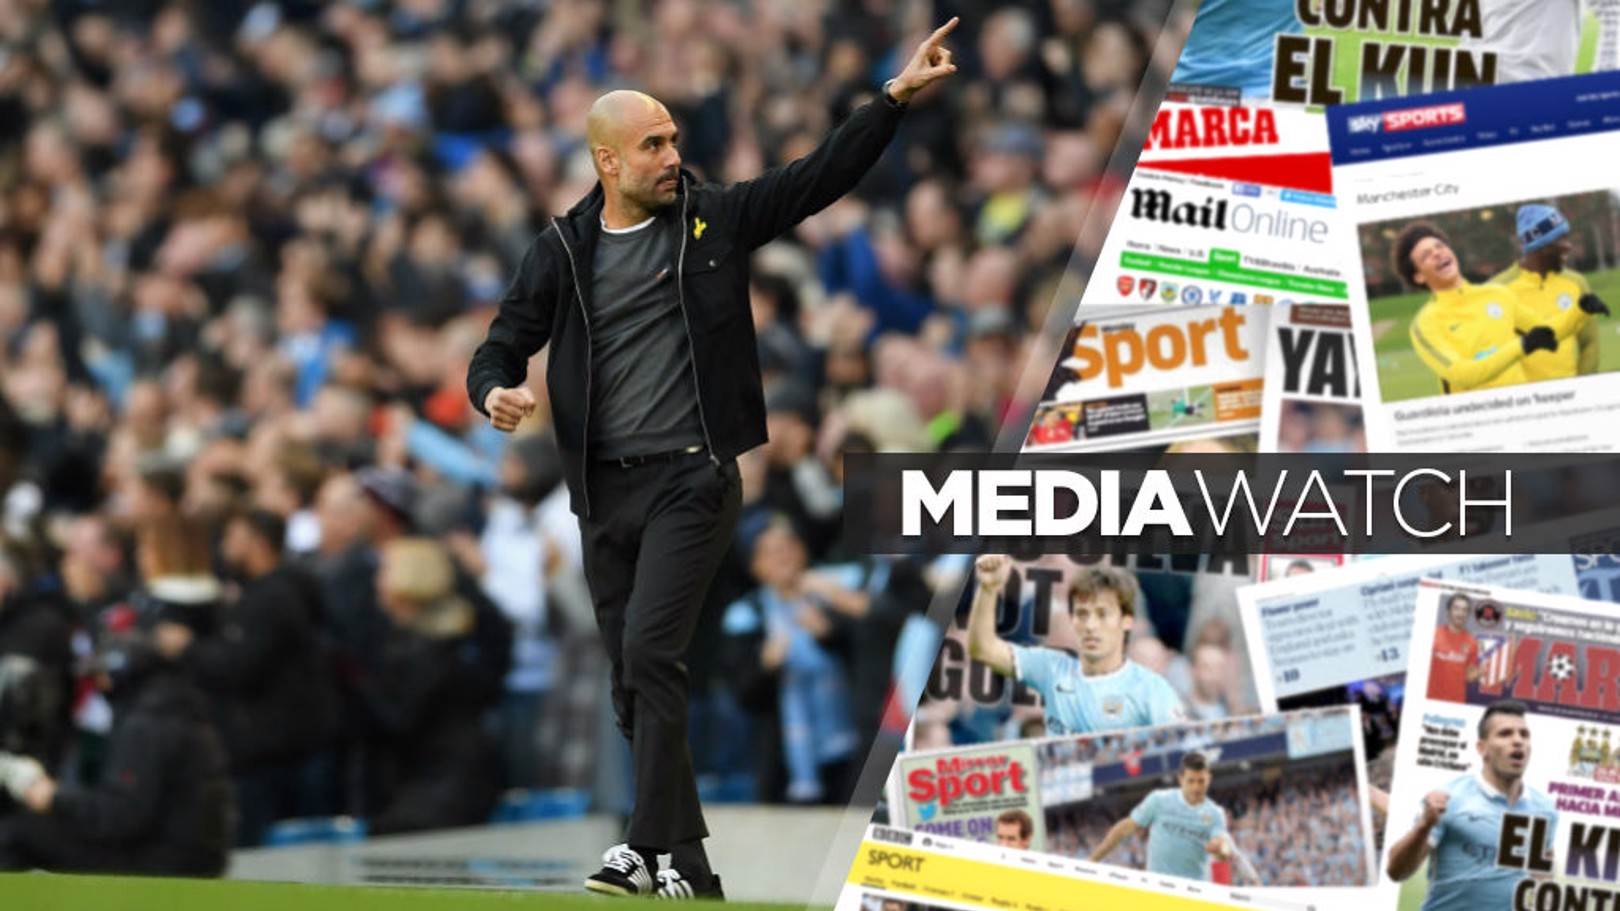 GAME CHANGER: Pep Guardiola is raising standards according to sections of the media.